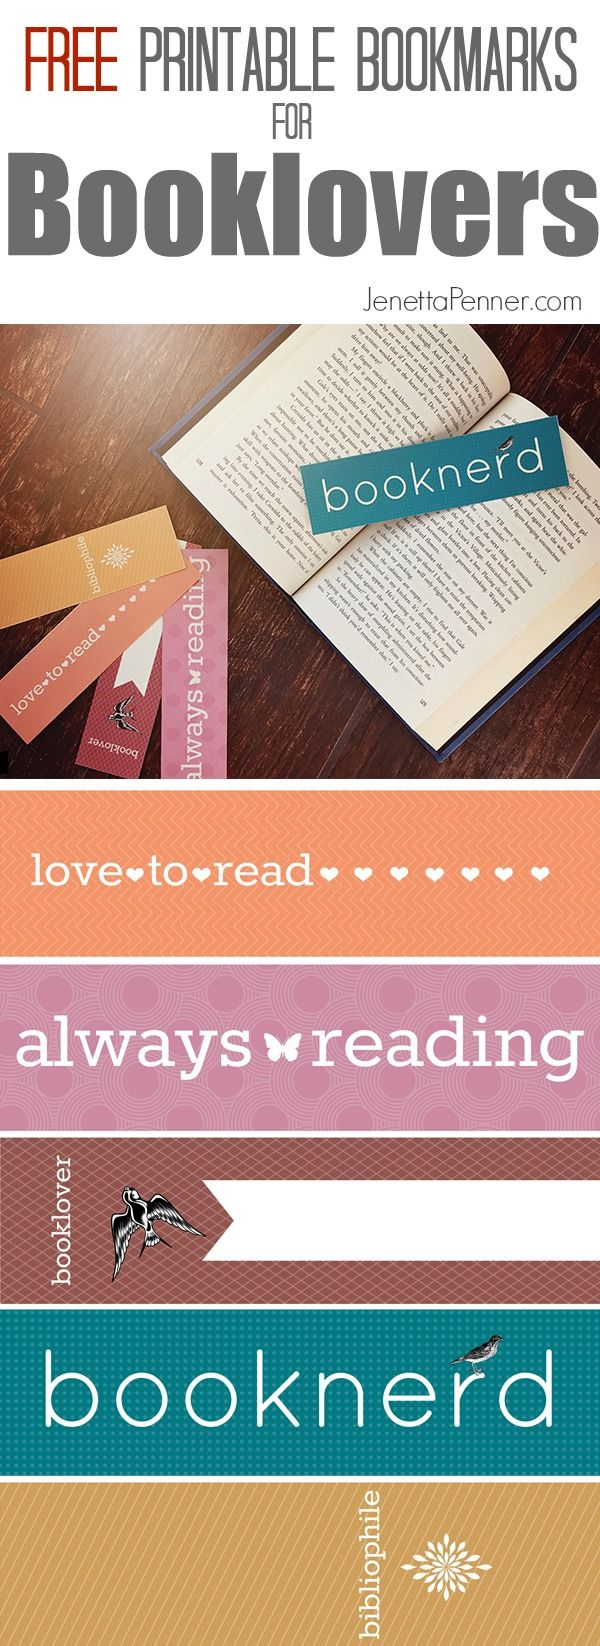 Oh my goodness.  I am ALWAYS losing my bookmarks, so this set of free printable bookmarks is perfect.  They also are great gifts for my book loving friends.